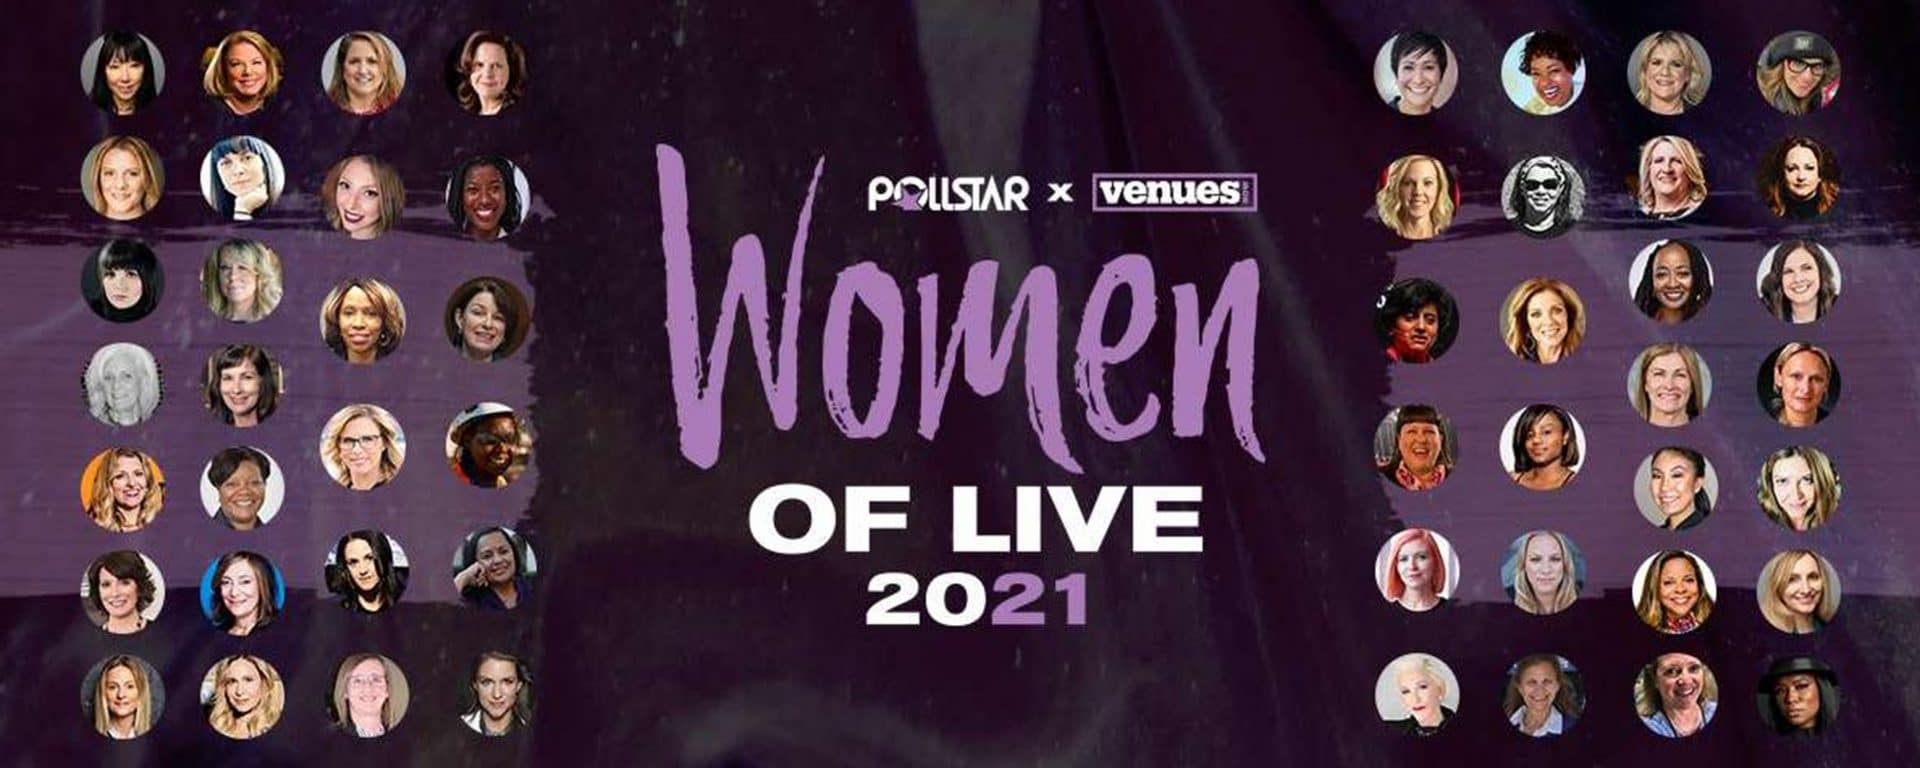 Women of Live Roundtable: A View of the Work Ahead